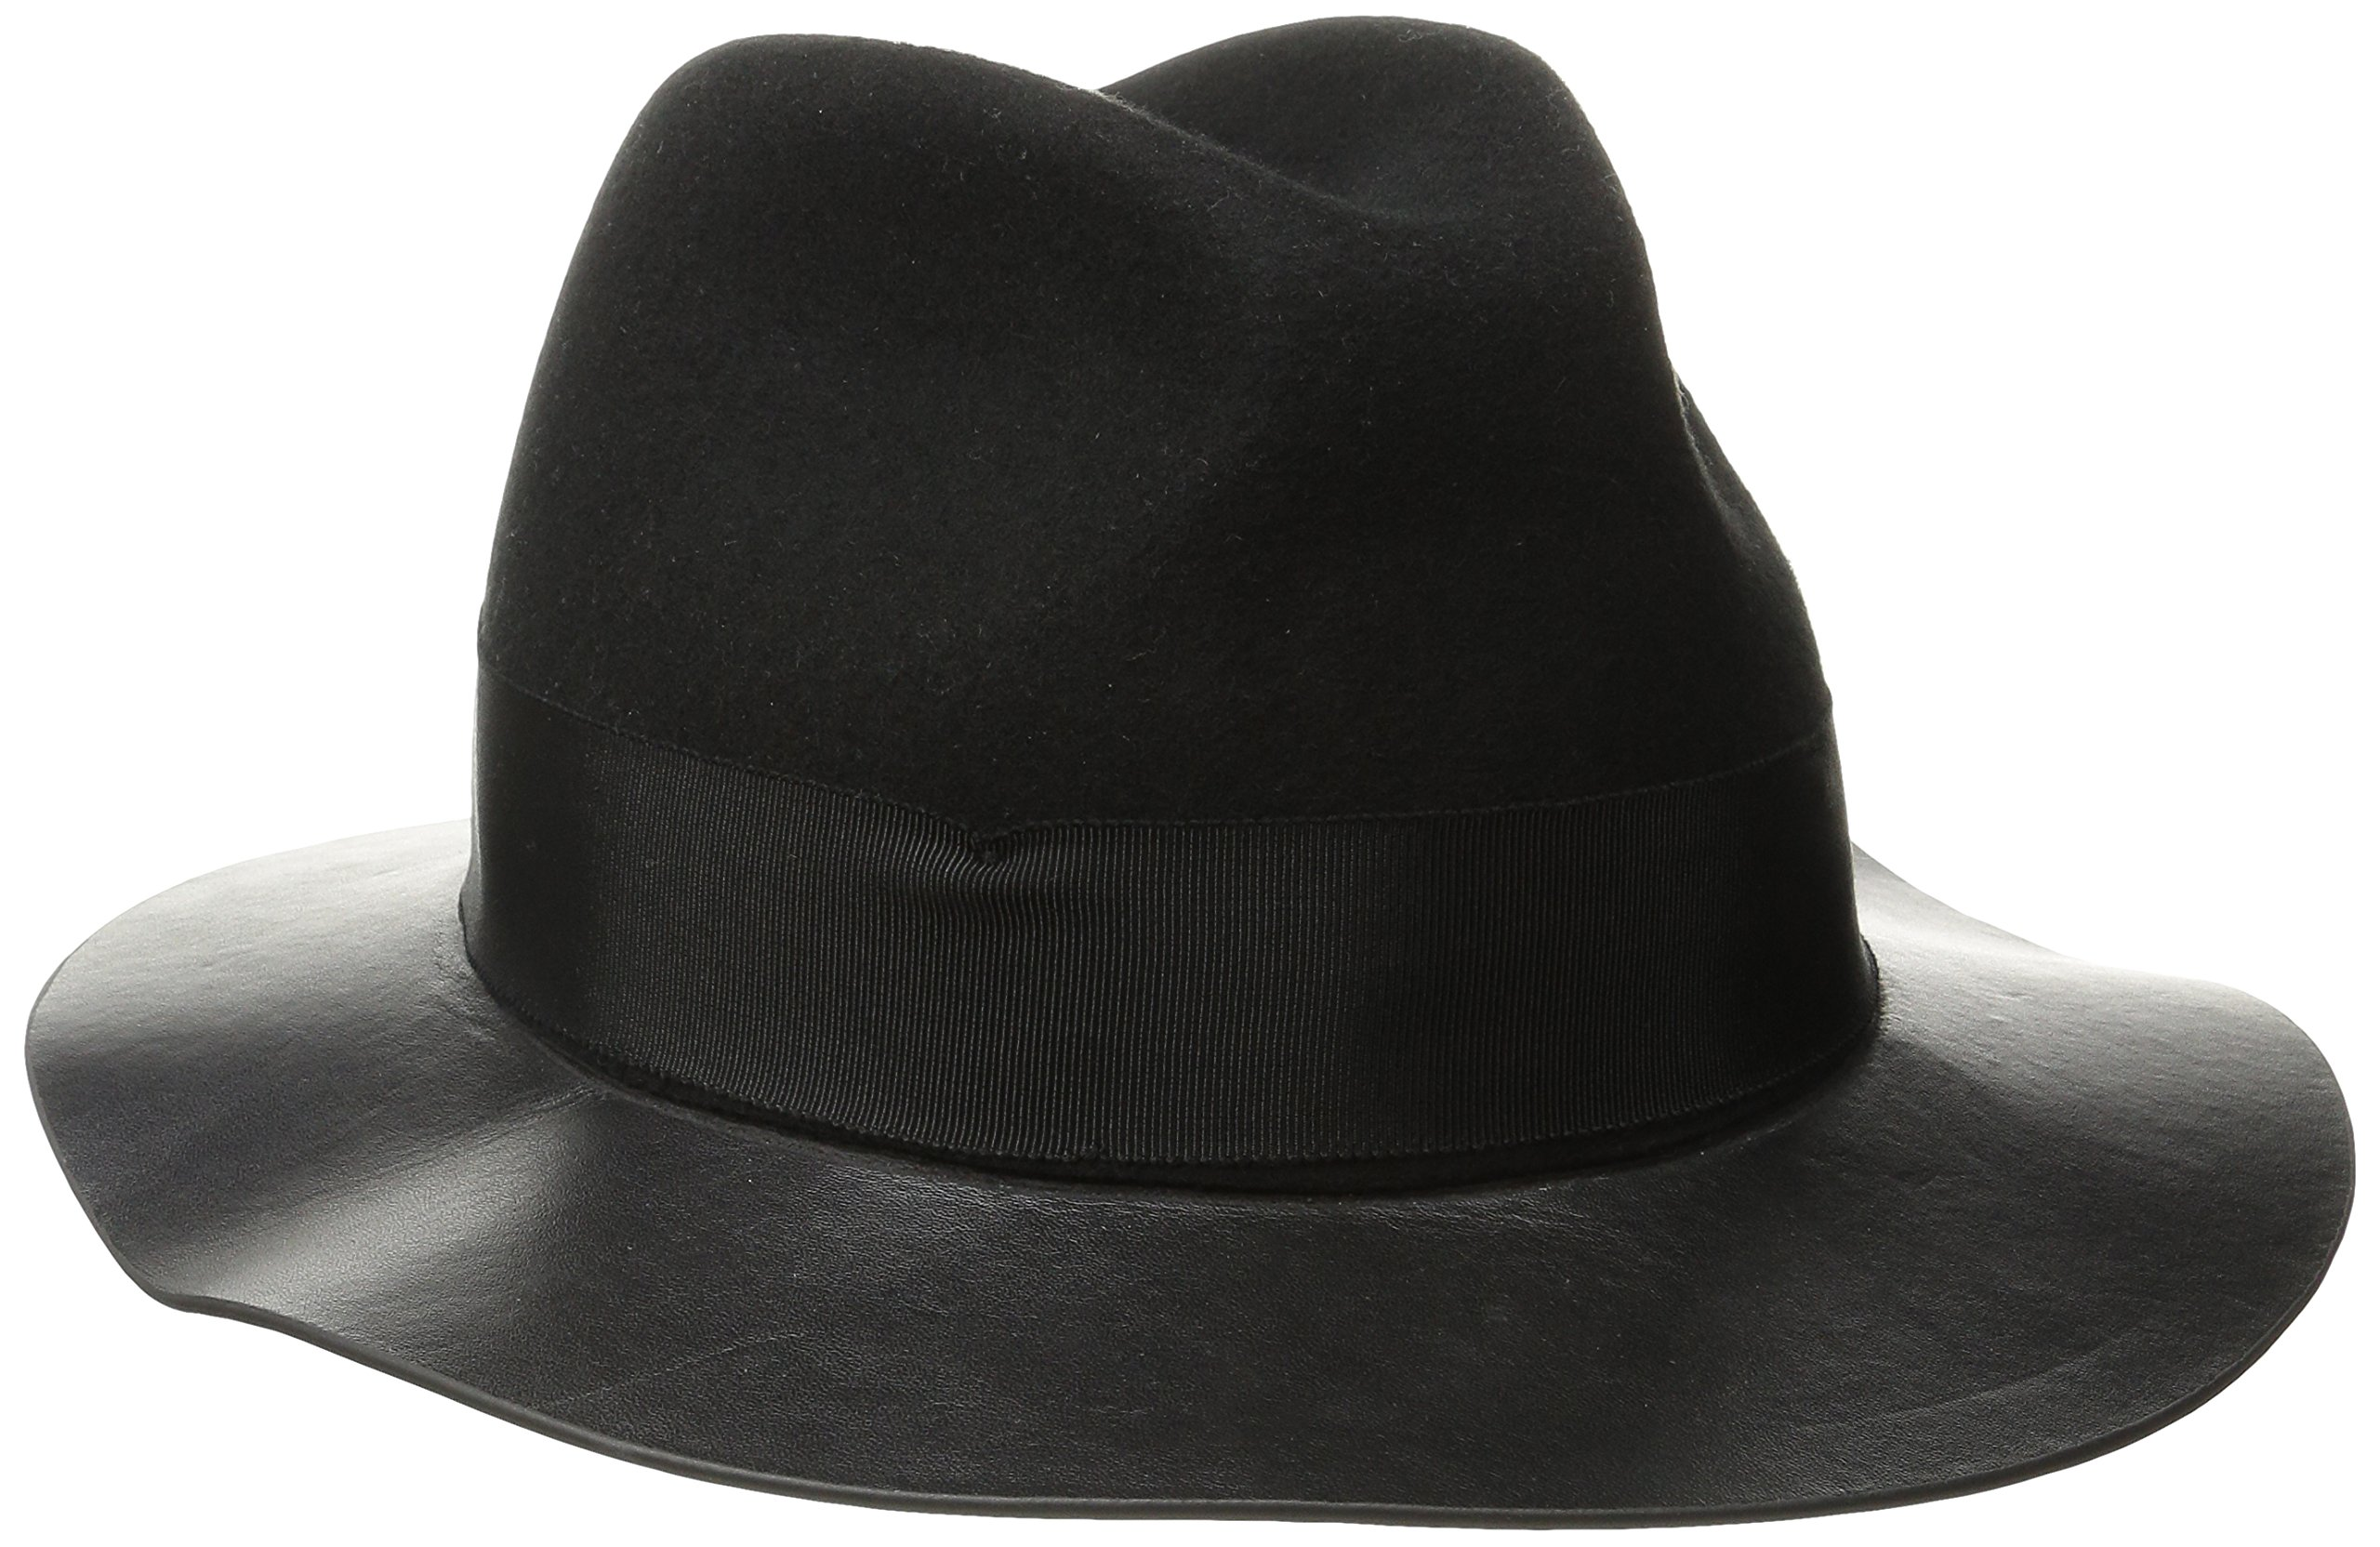 San Diego Hat Company Women's Adjustable Fedora with Grossgrain Band and Gold Stud Trim, Black, One Size